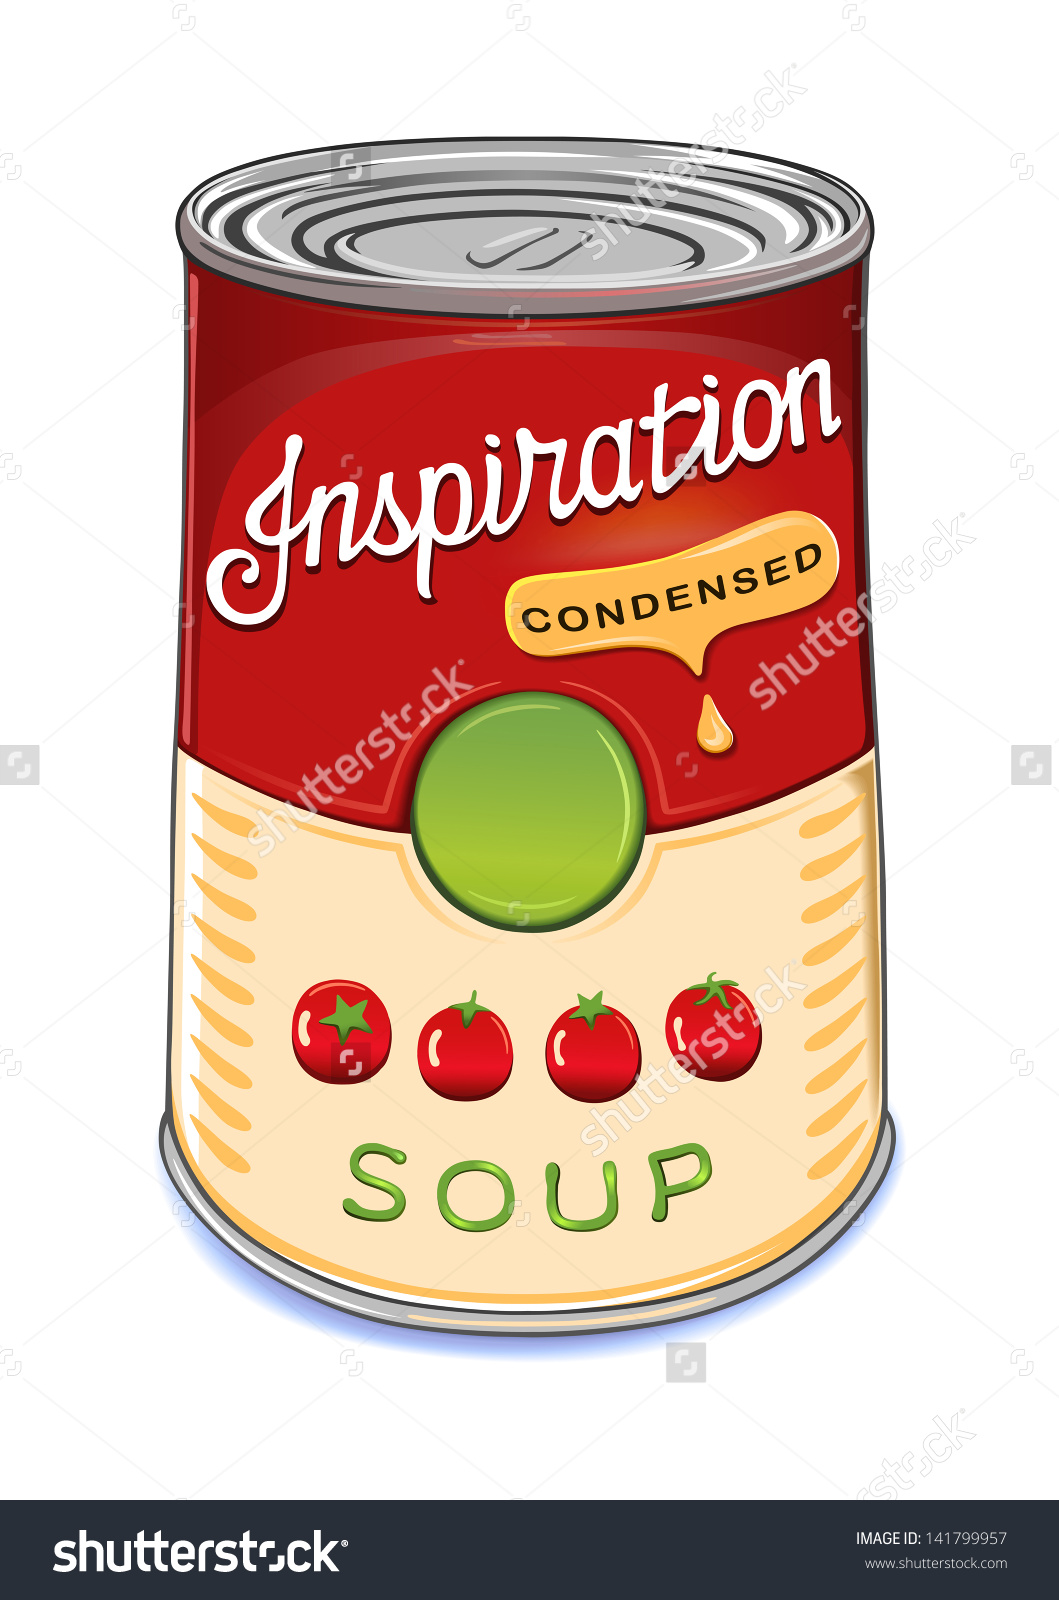 Canned soup clipart.